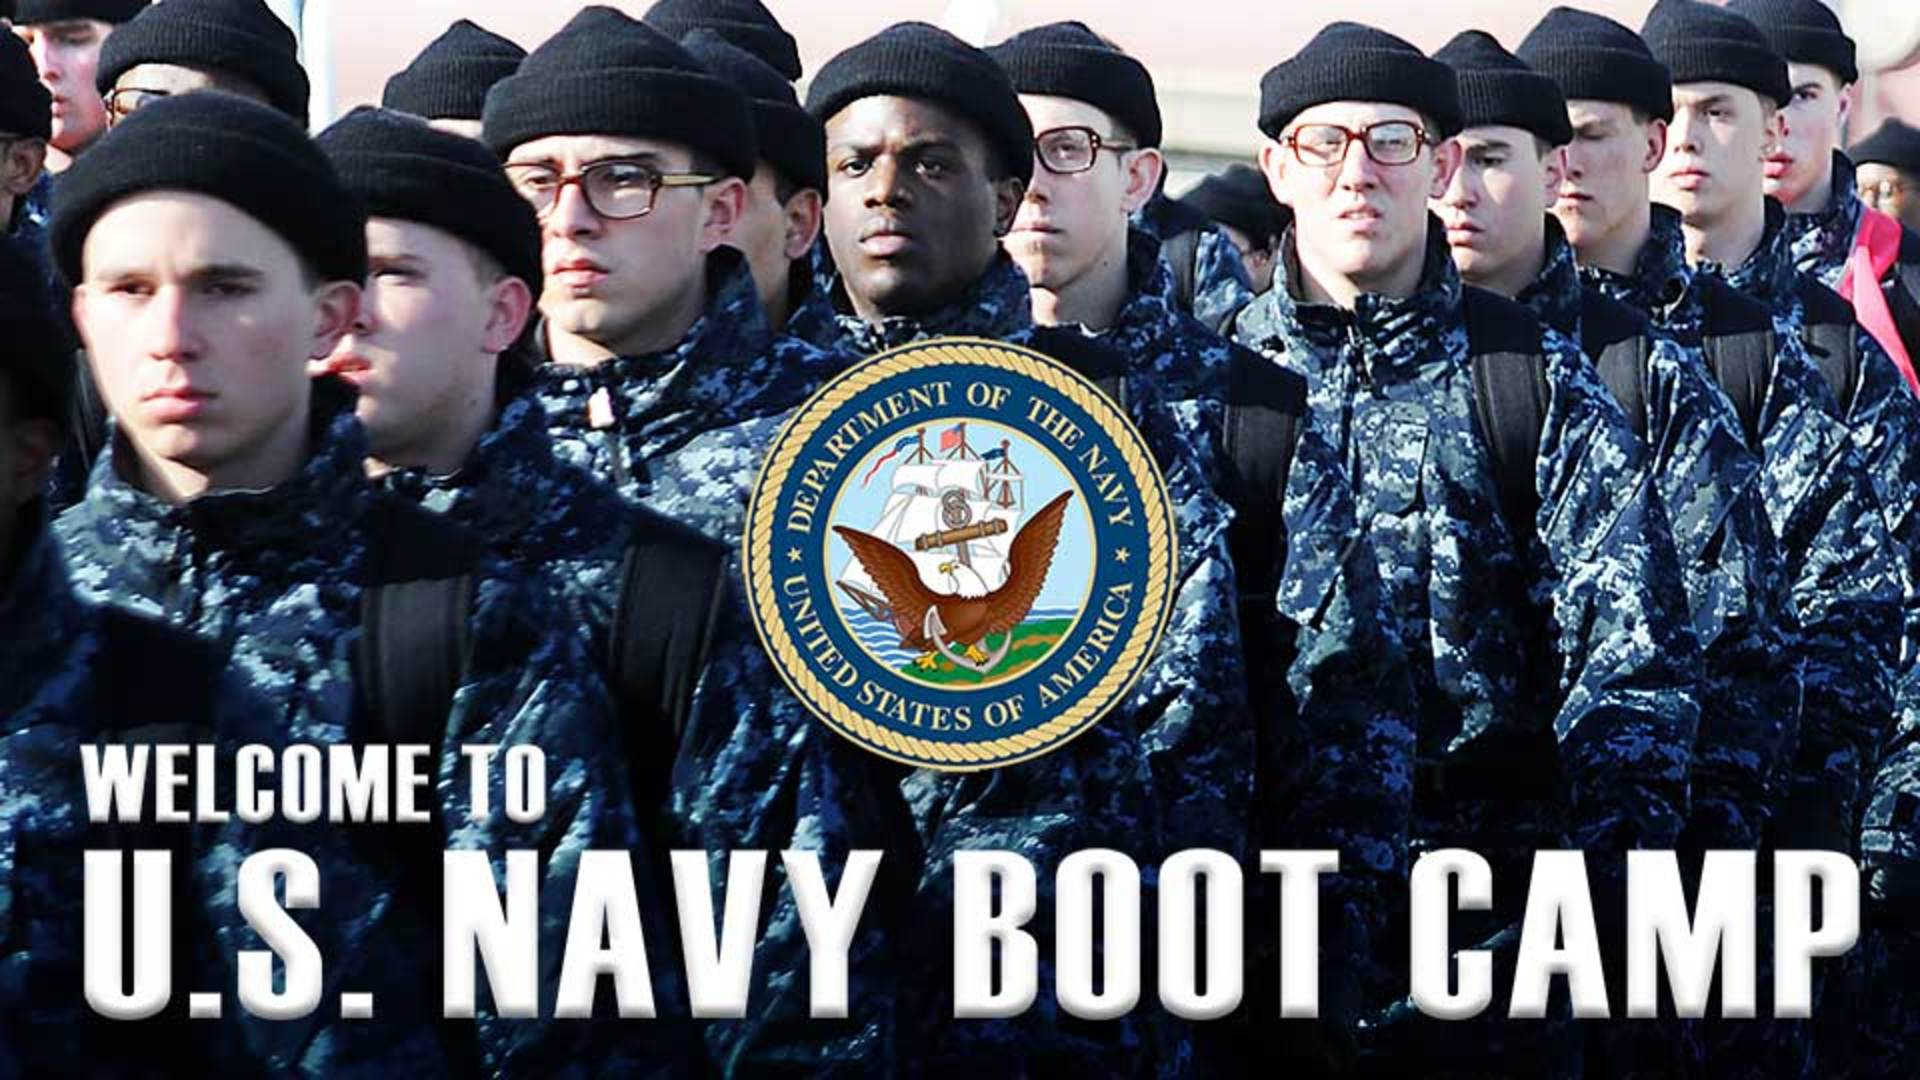 Welcome to U.S. Navy Boot Camp